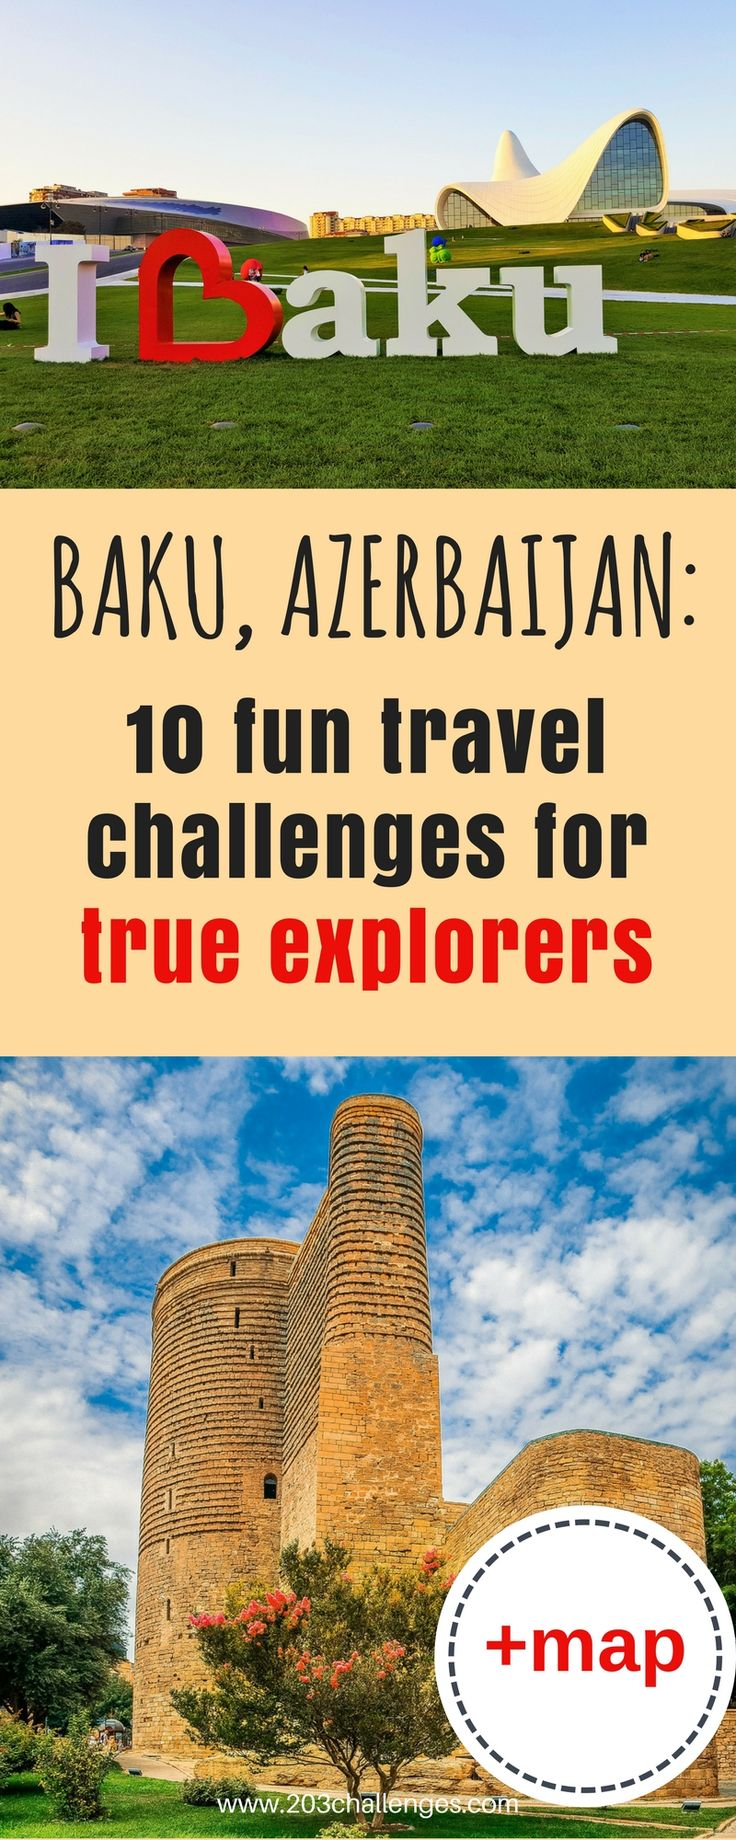 Things to do in Baku: 10 fun travel challenges for true explorers (+map) | 203Challenges